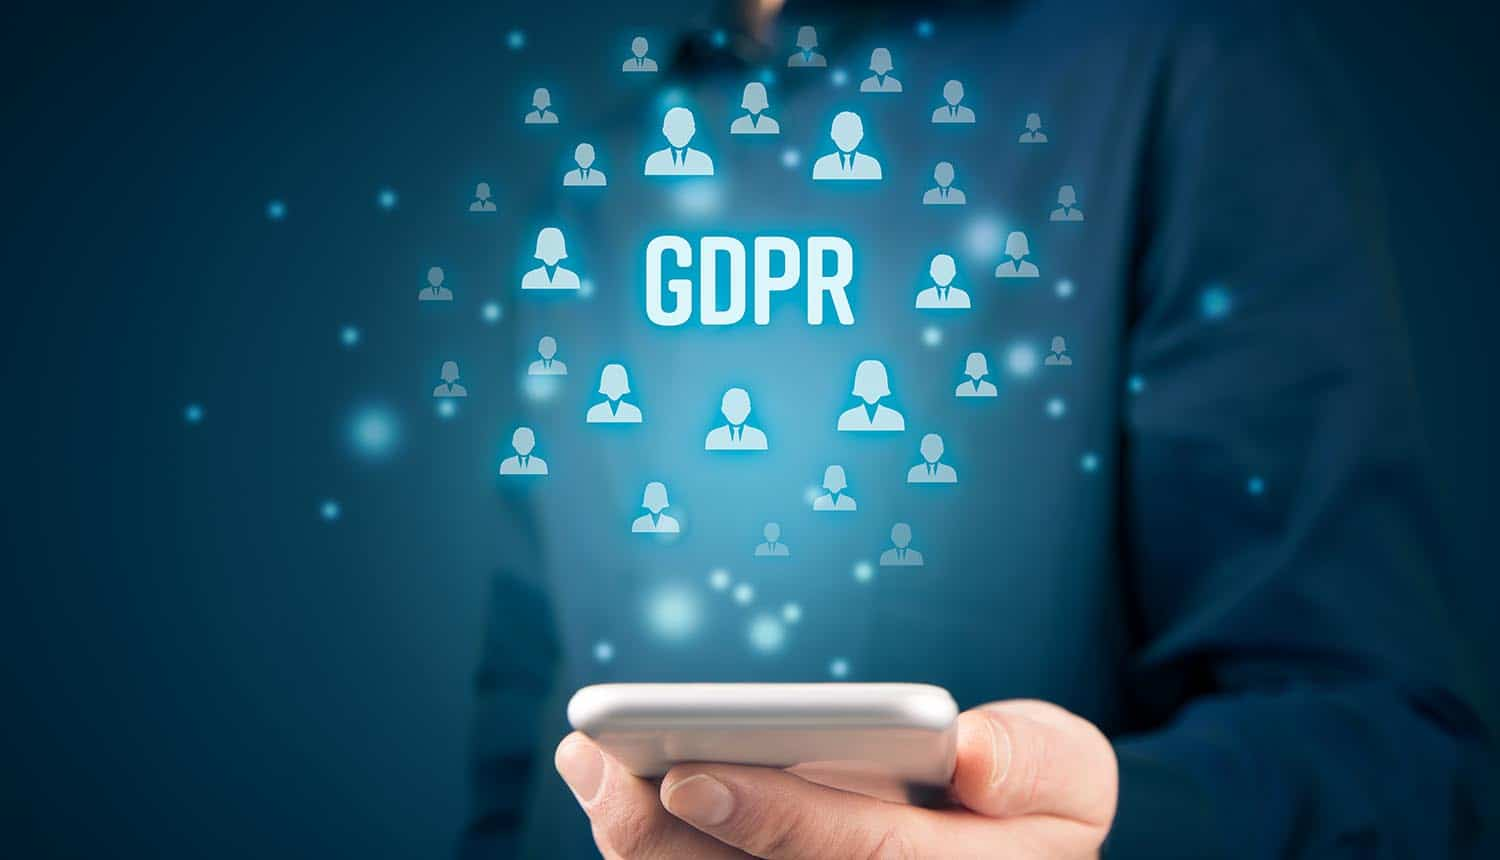 GDPR and smart phone showing UK ICO's probe into adtech and RTB